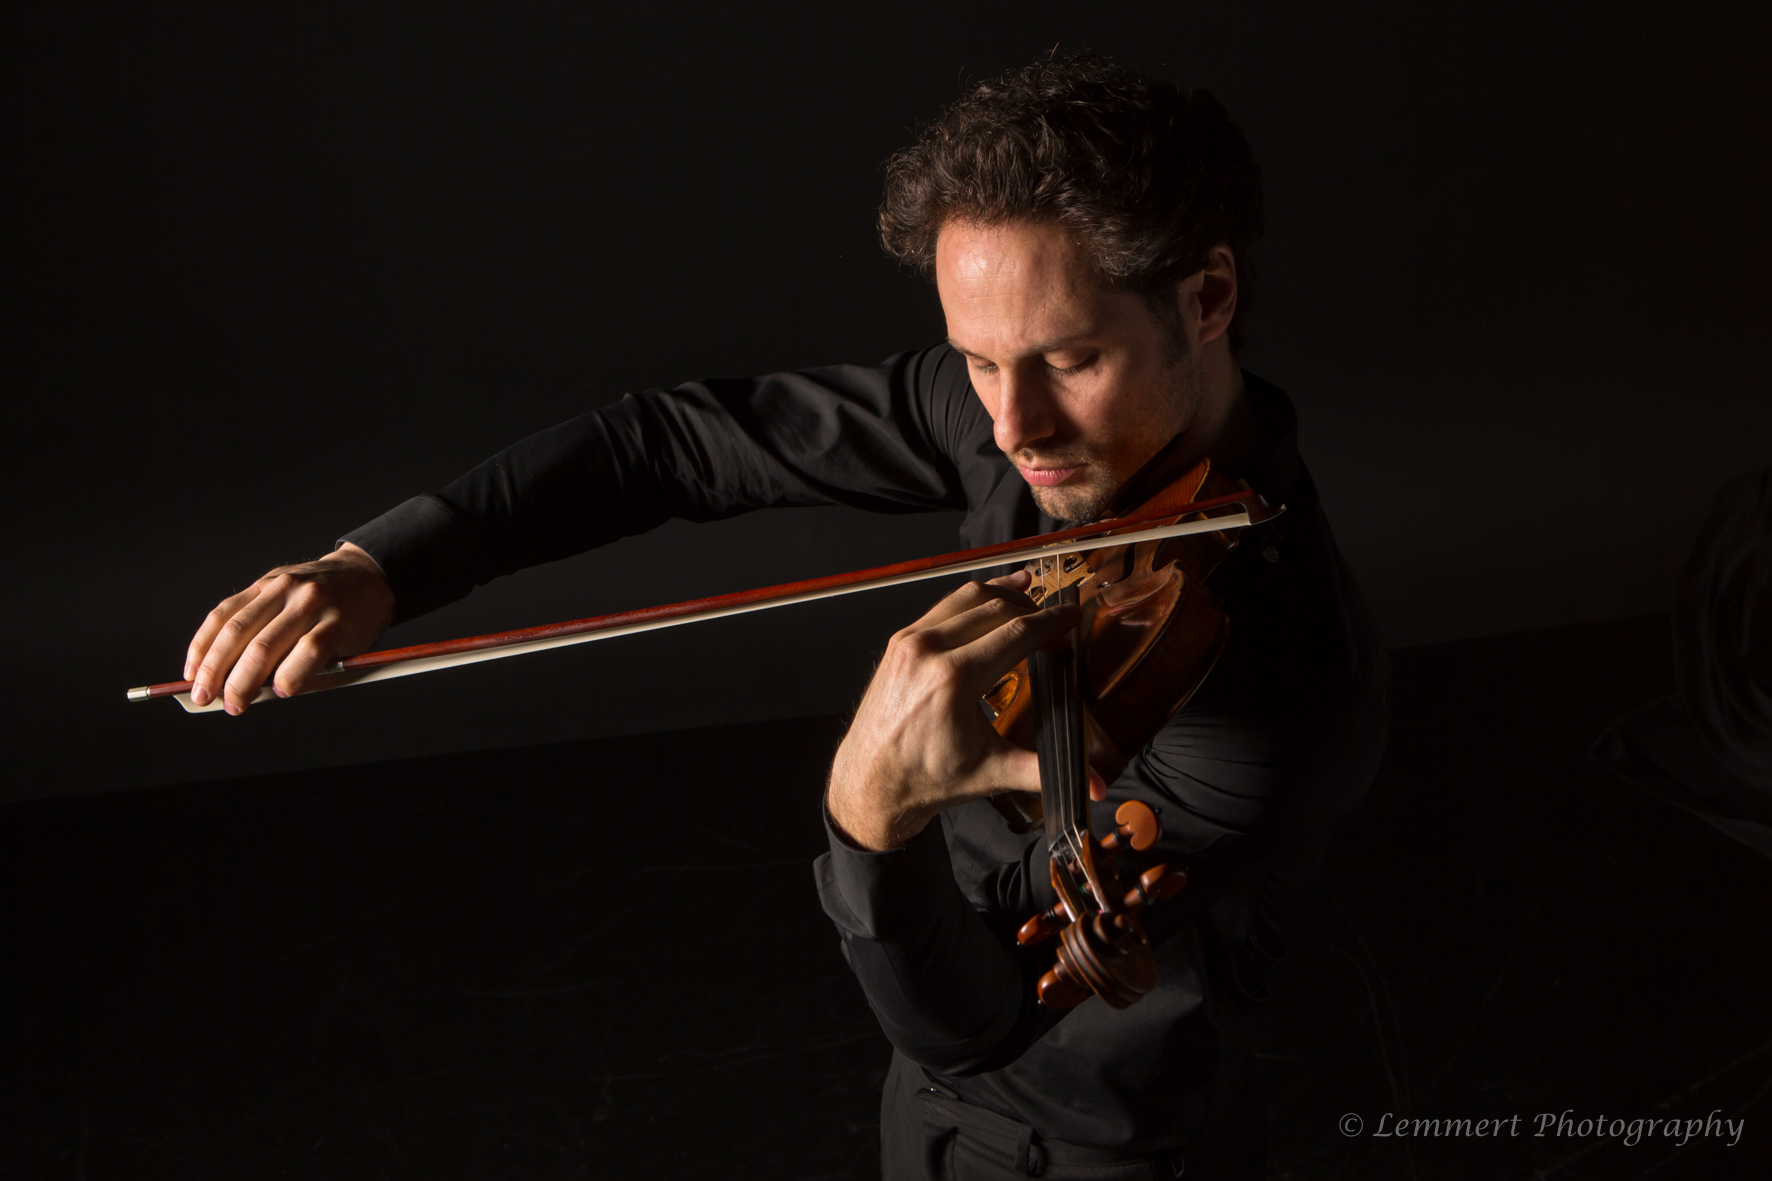 Wim Spaepen playing violin